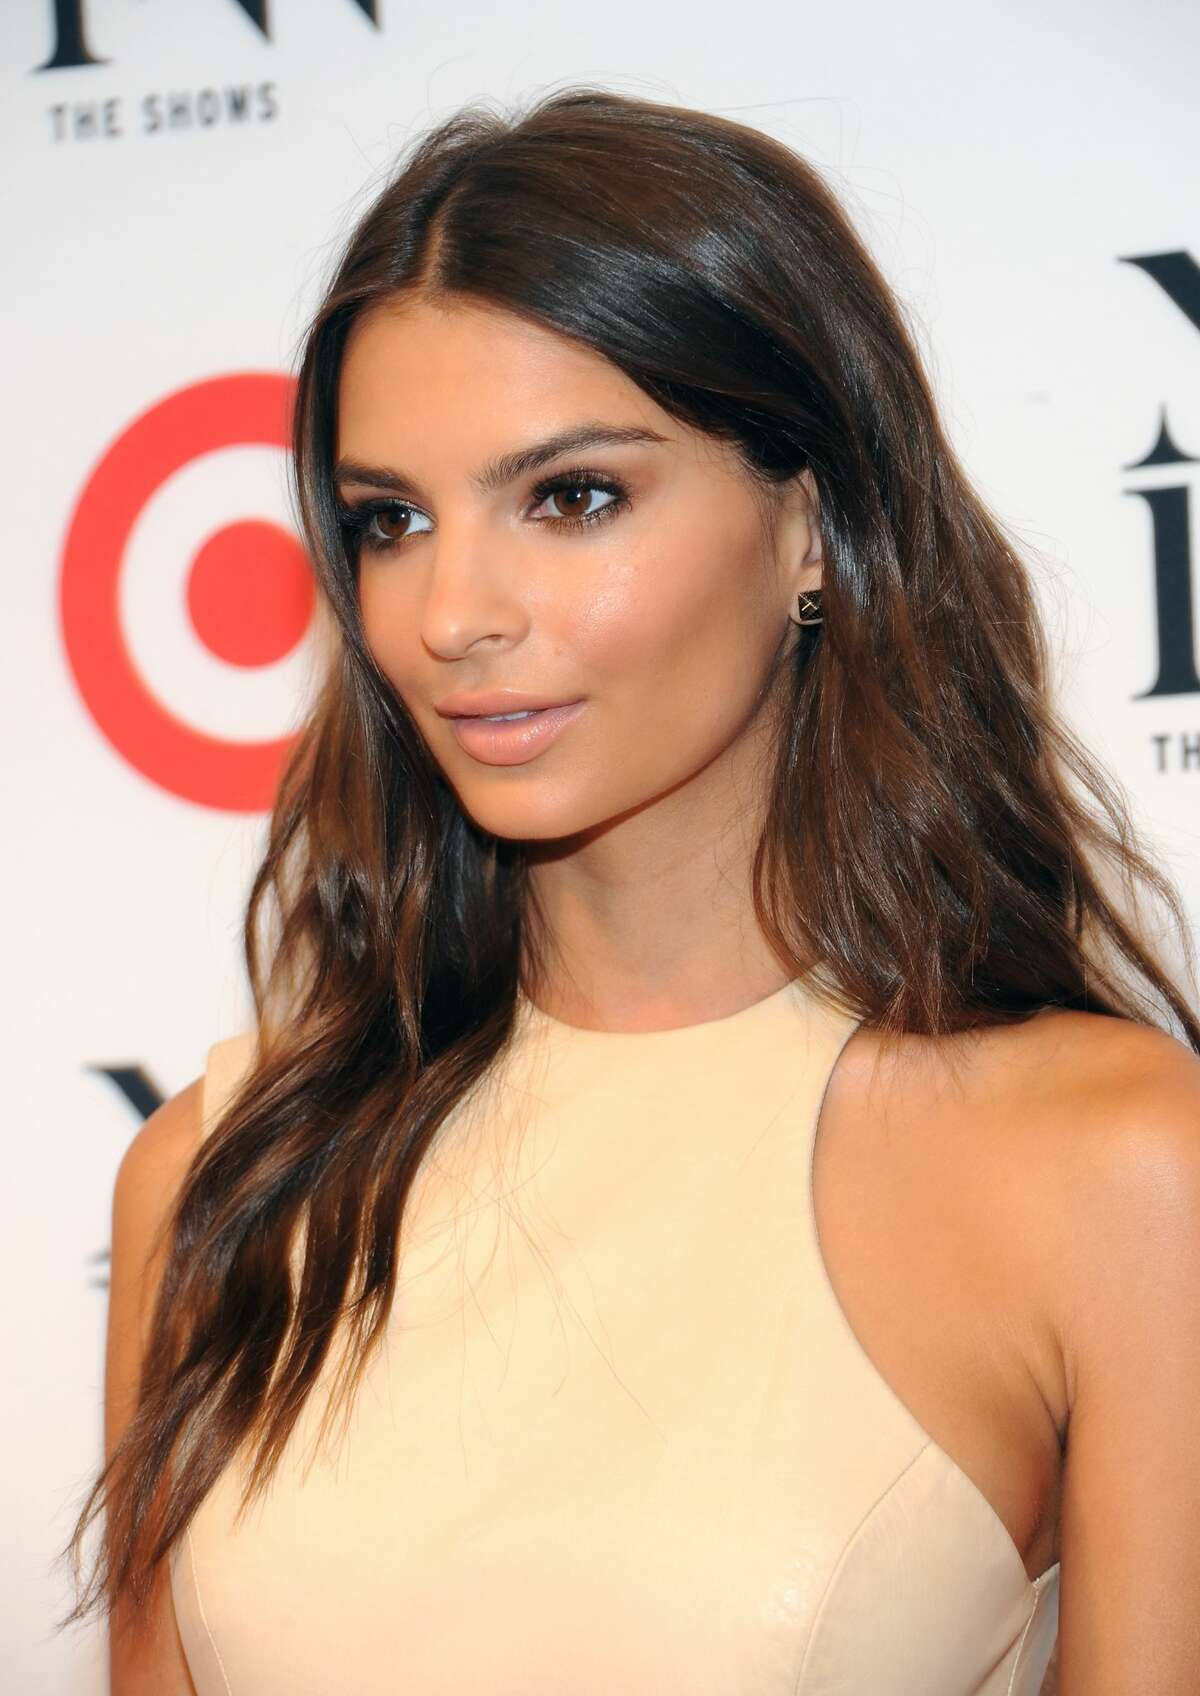 NEW YORK, NY - SEPTEMBER 06: Actress Emily Ratajkowski attends Target + IMG New York Fashion Week Kickoff event at The Park at Moynihan Station on September 6, 2016 in New York City. (Photo by Desiree Navarro/WireImage)